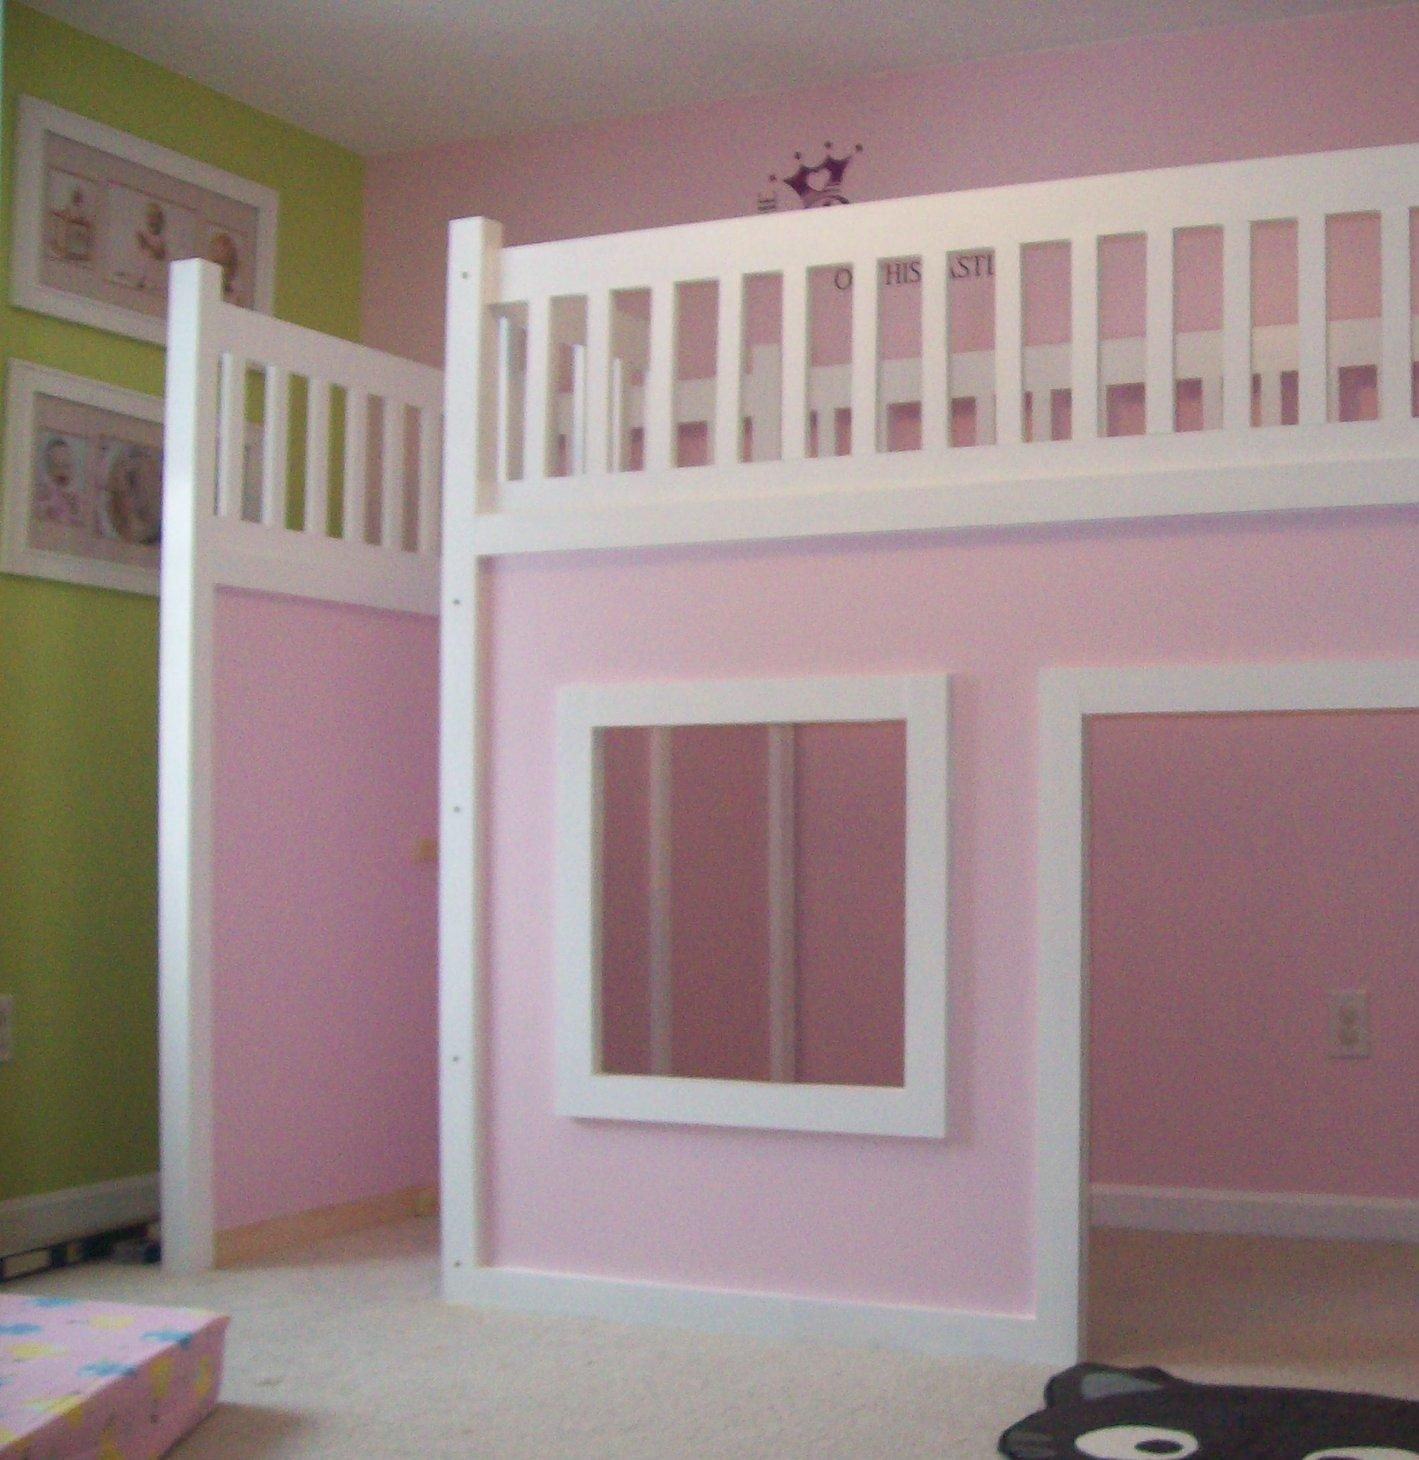 Bed Over Stair Box With Storage And Stairs: Build On Storage Stairs For The Playhouse Loft